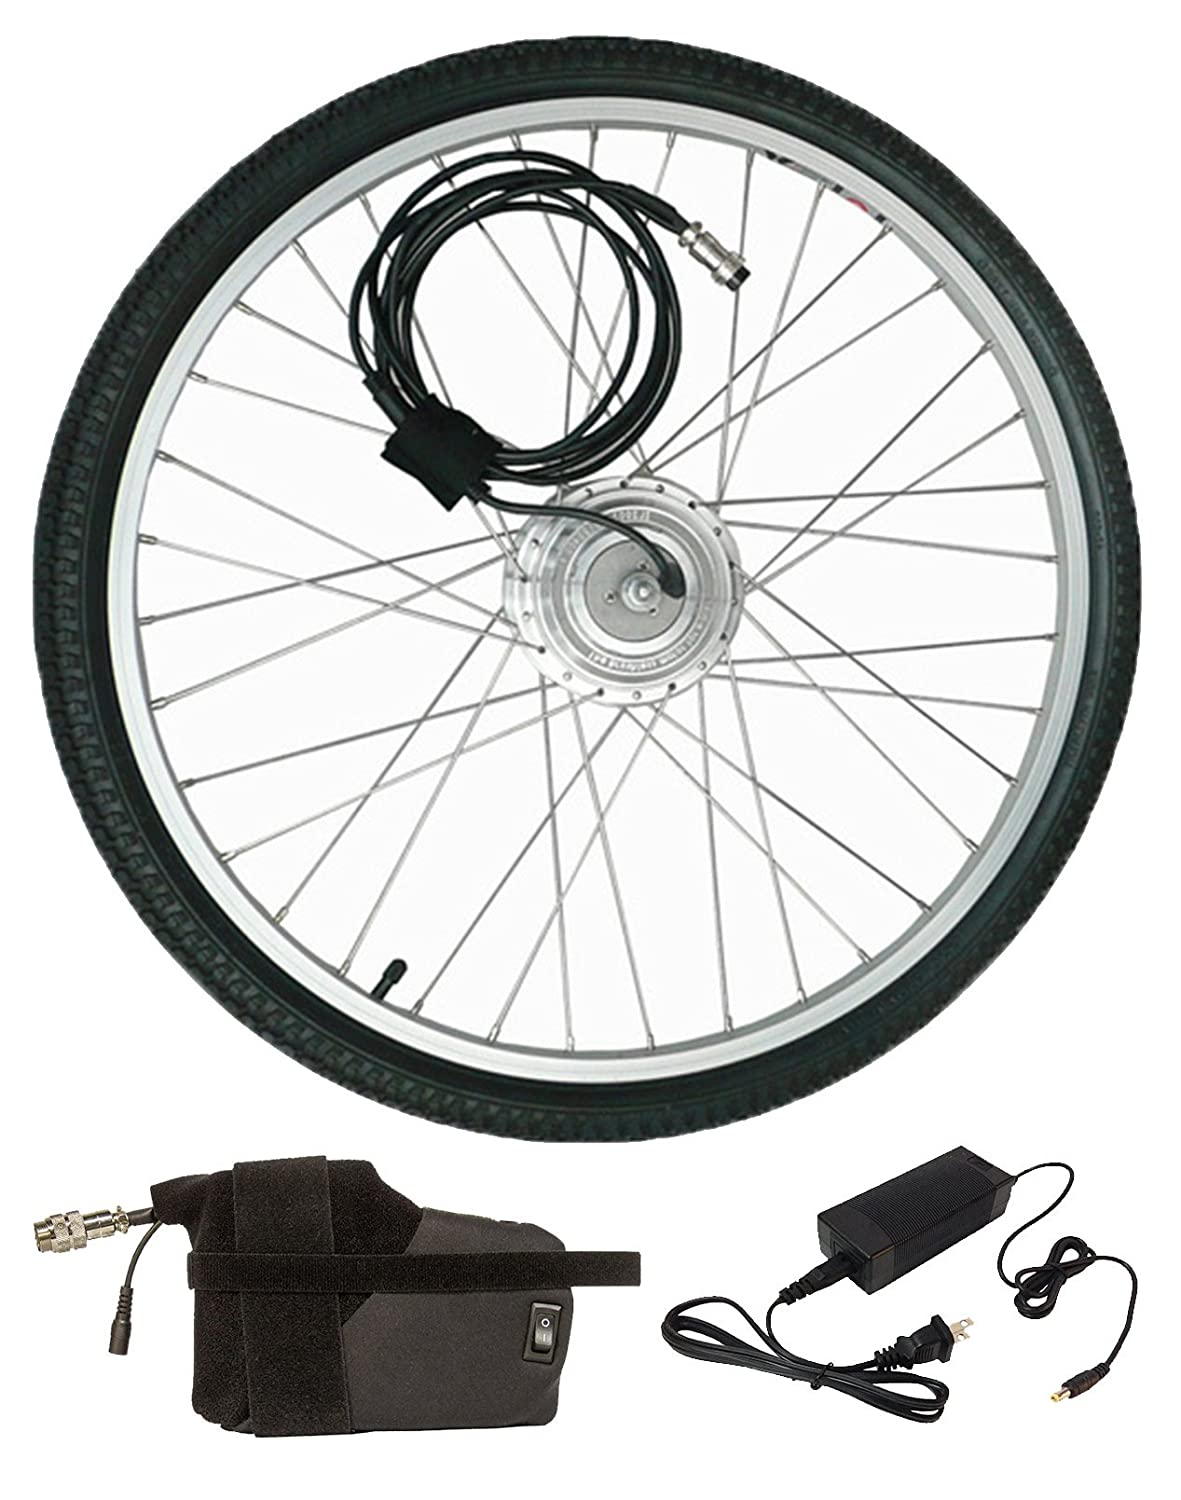 Clean Republic Electric Bike Kit - 250 Watt 24 Volt Hill Topper, Lithium Battery Included Review